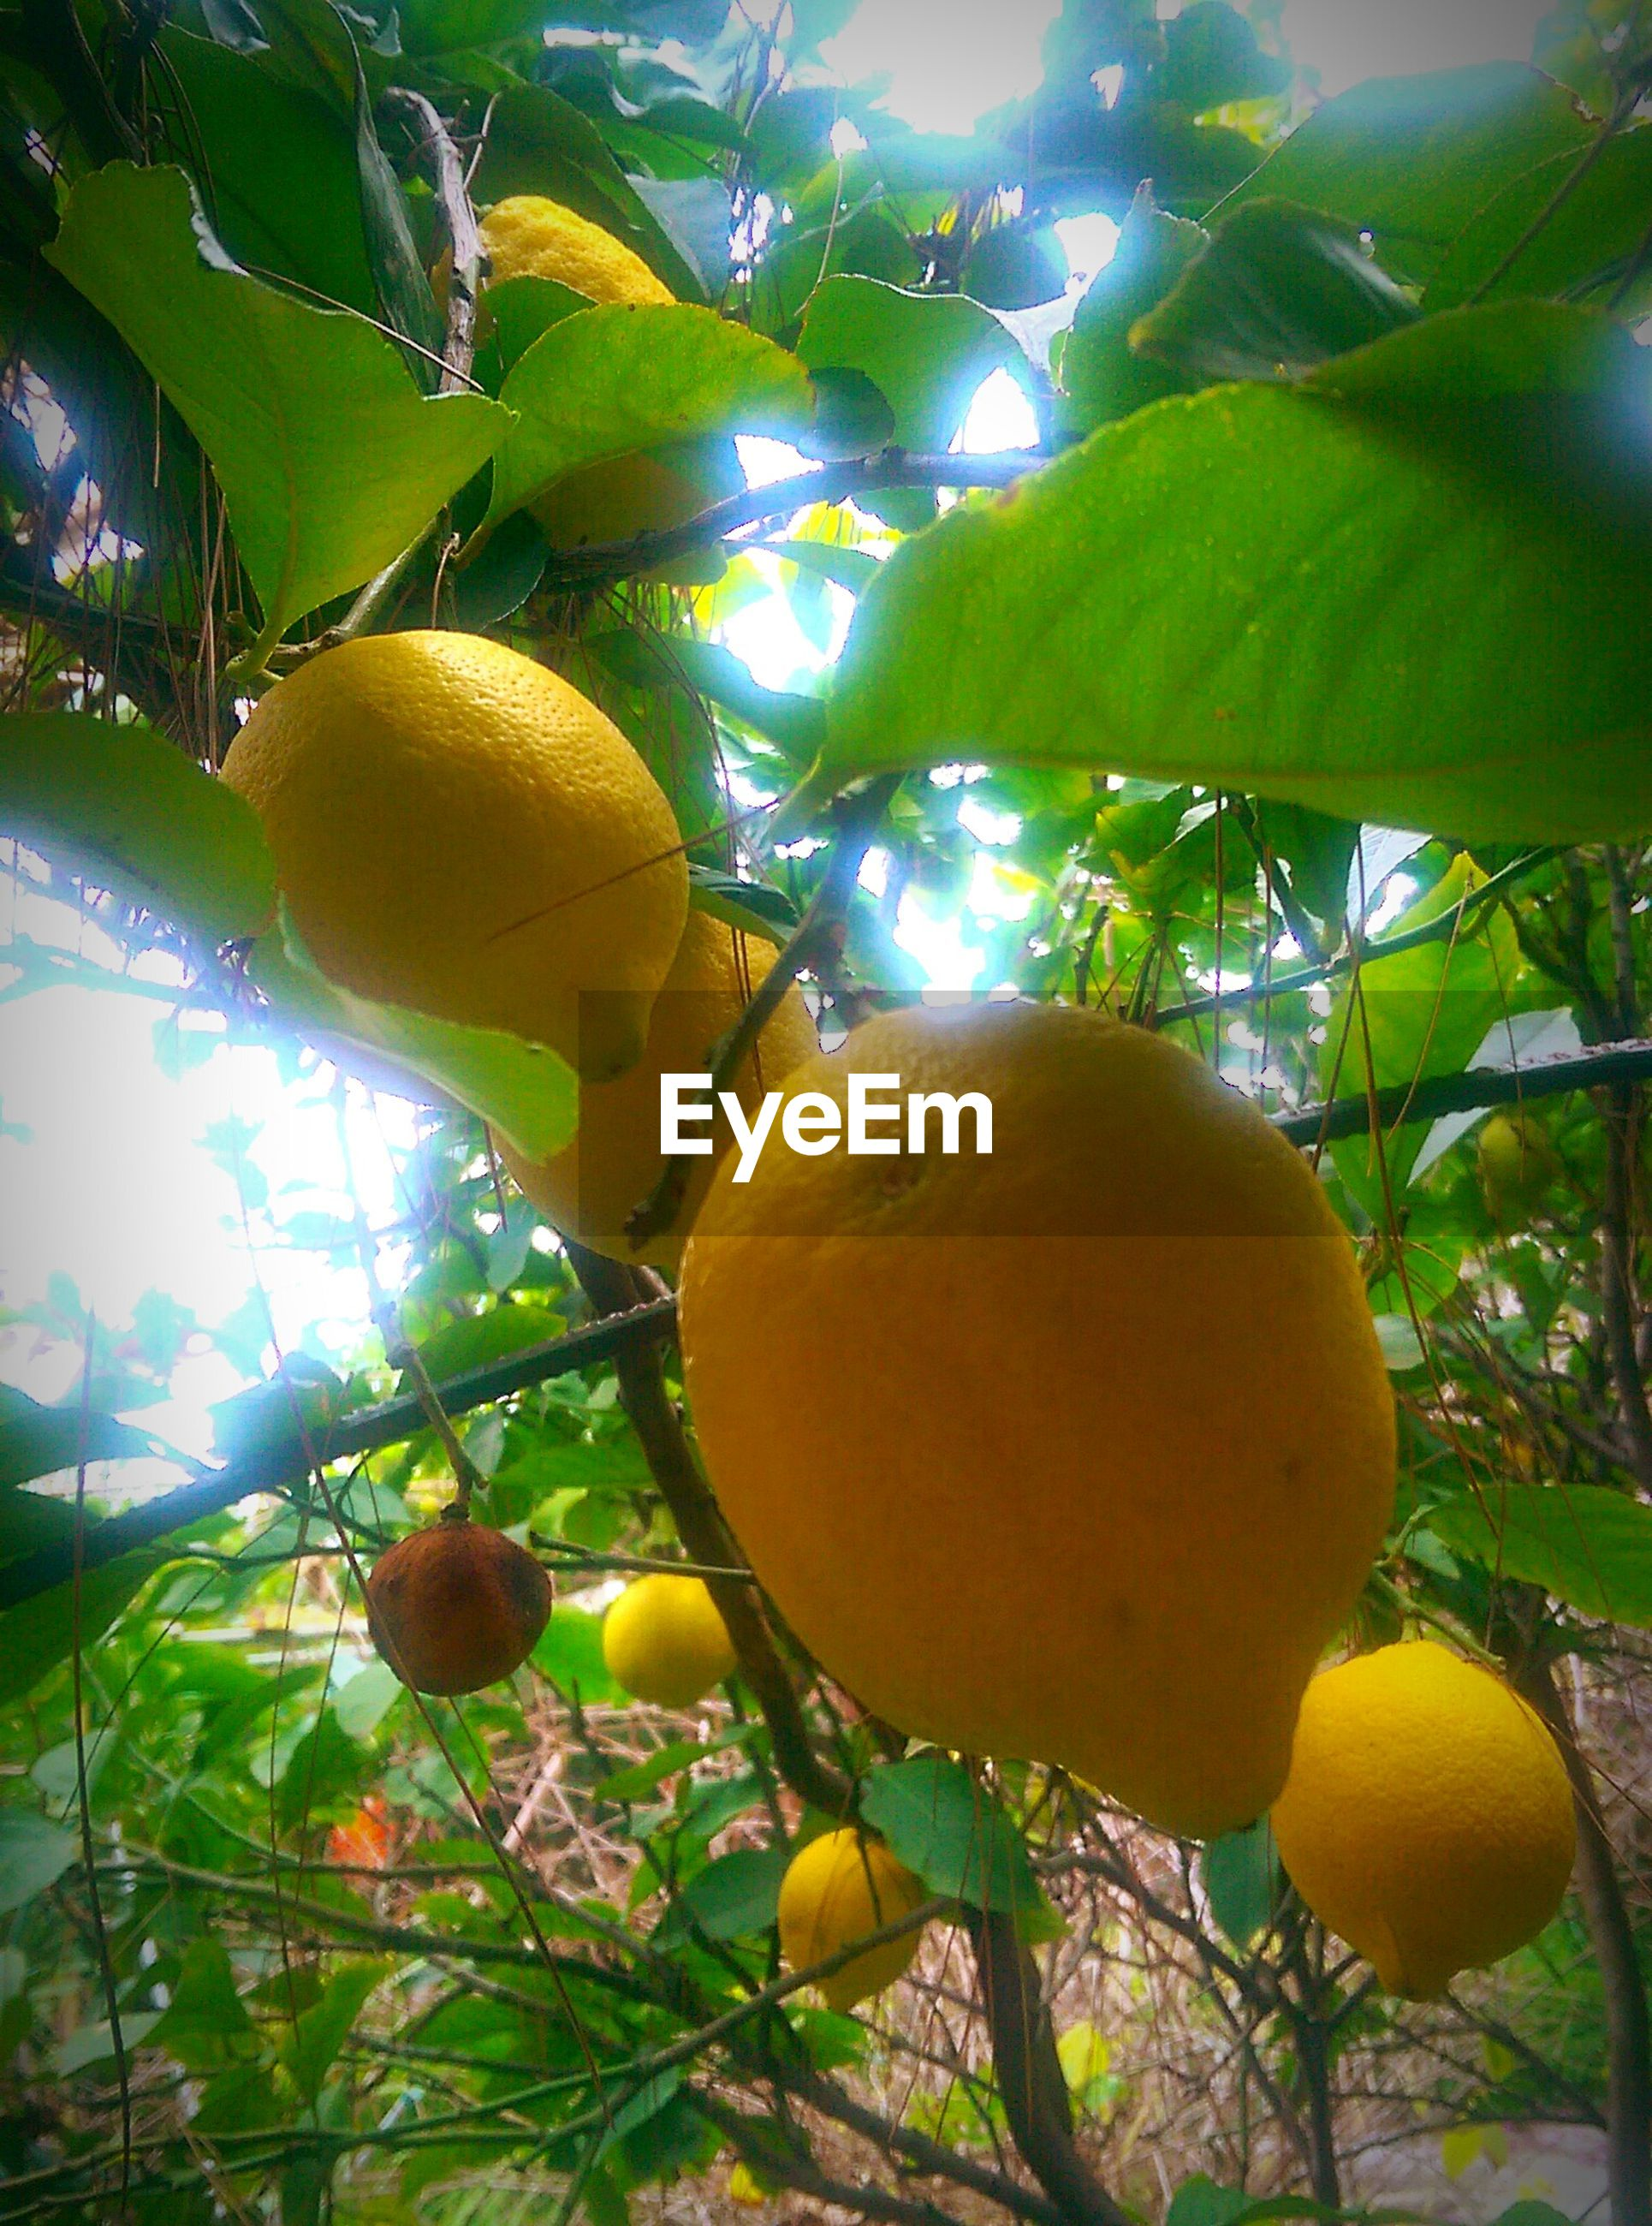 tree, fruit, food and drink, branch, growth, food, yellow, leaf, healthy eating, green color, low angle view, nature, close-up, freshness, citrus fruit, hanging, sunlight, agriculture, day, lemon